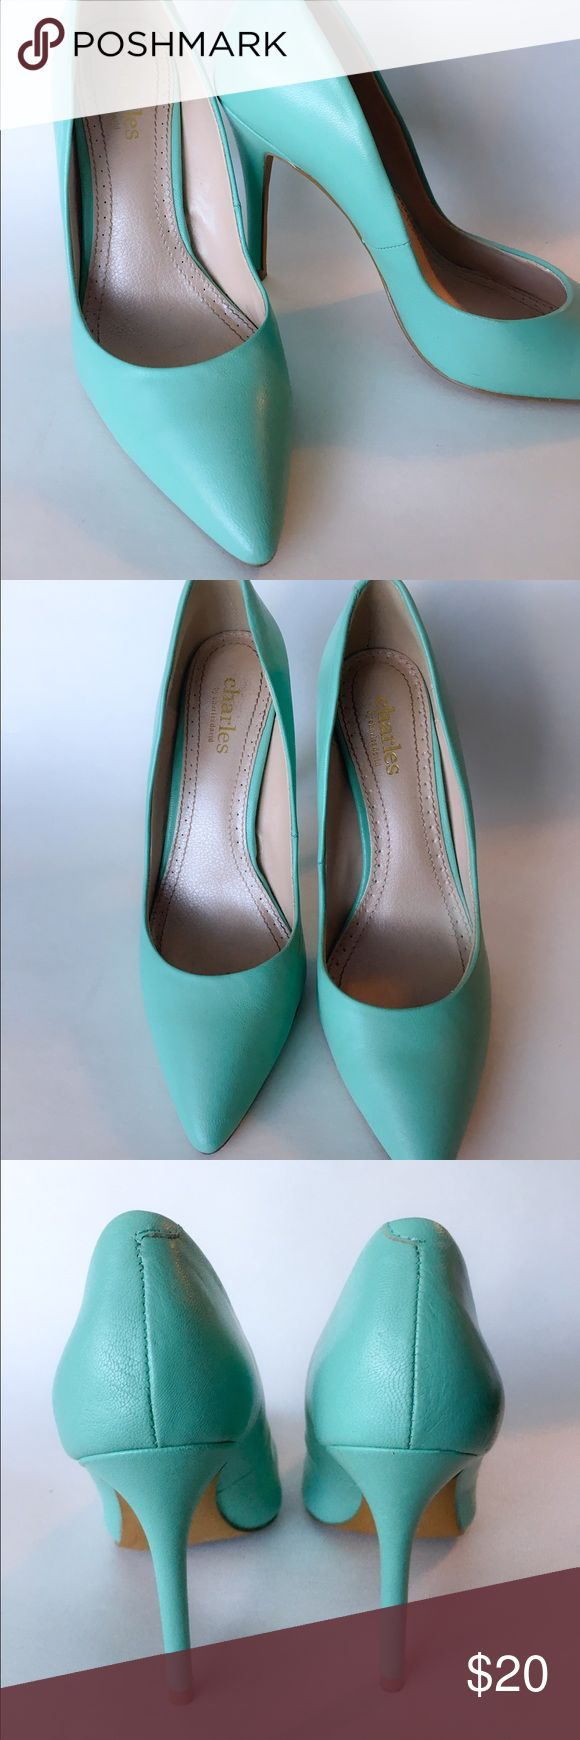 Charles David heels Teal heels Charles David Shoes Heels